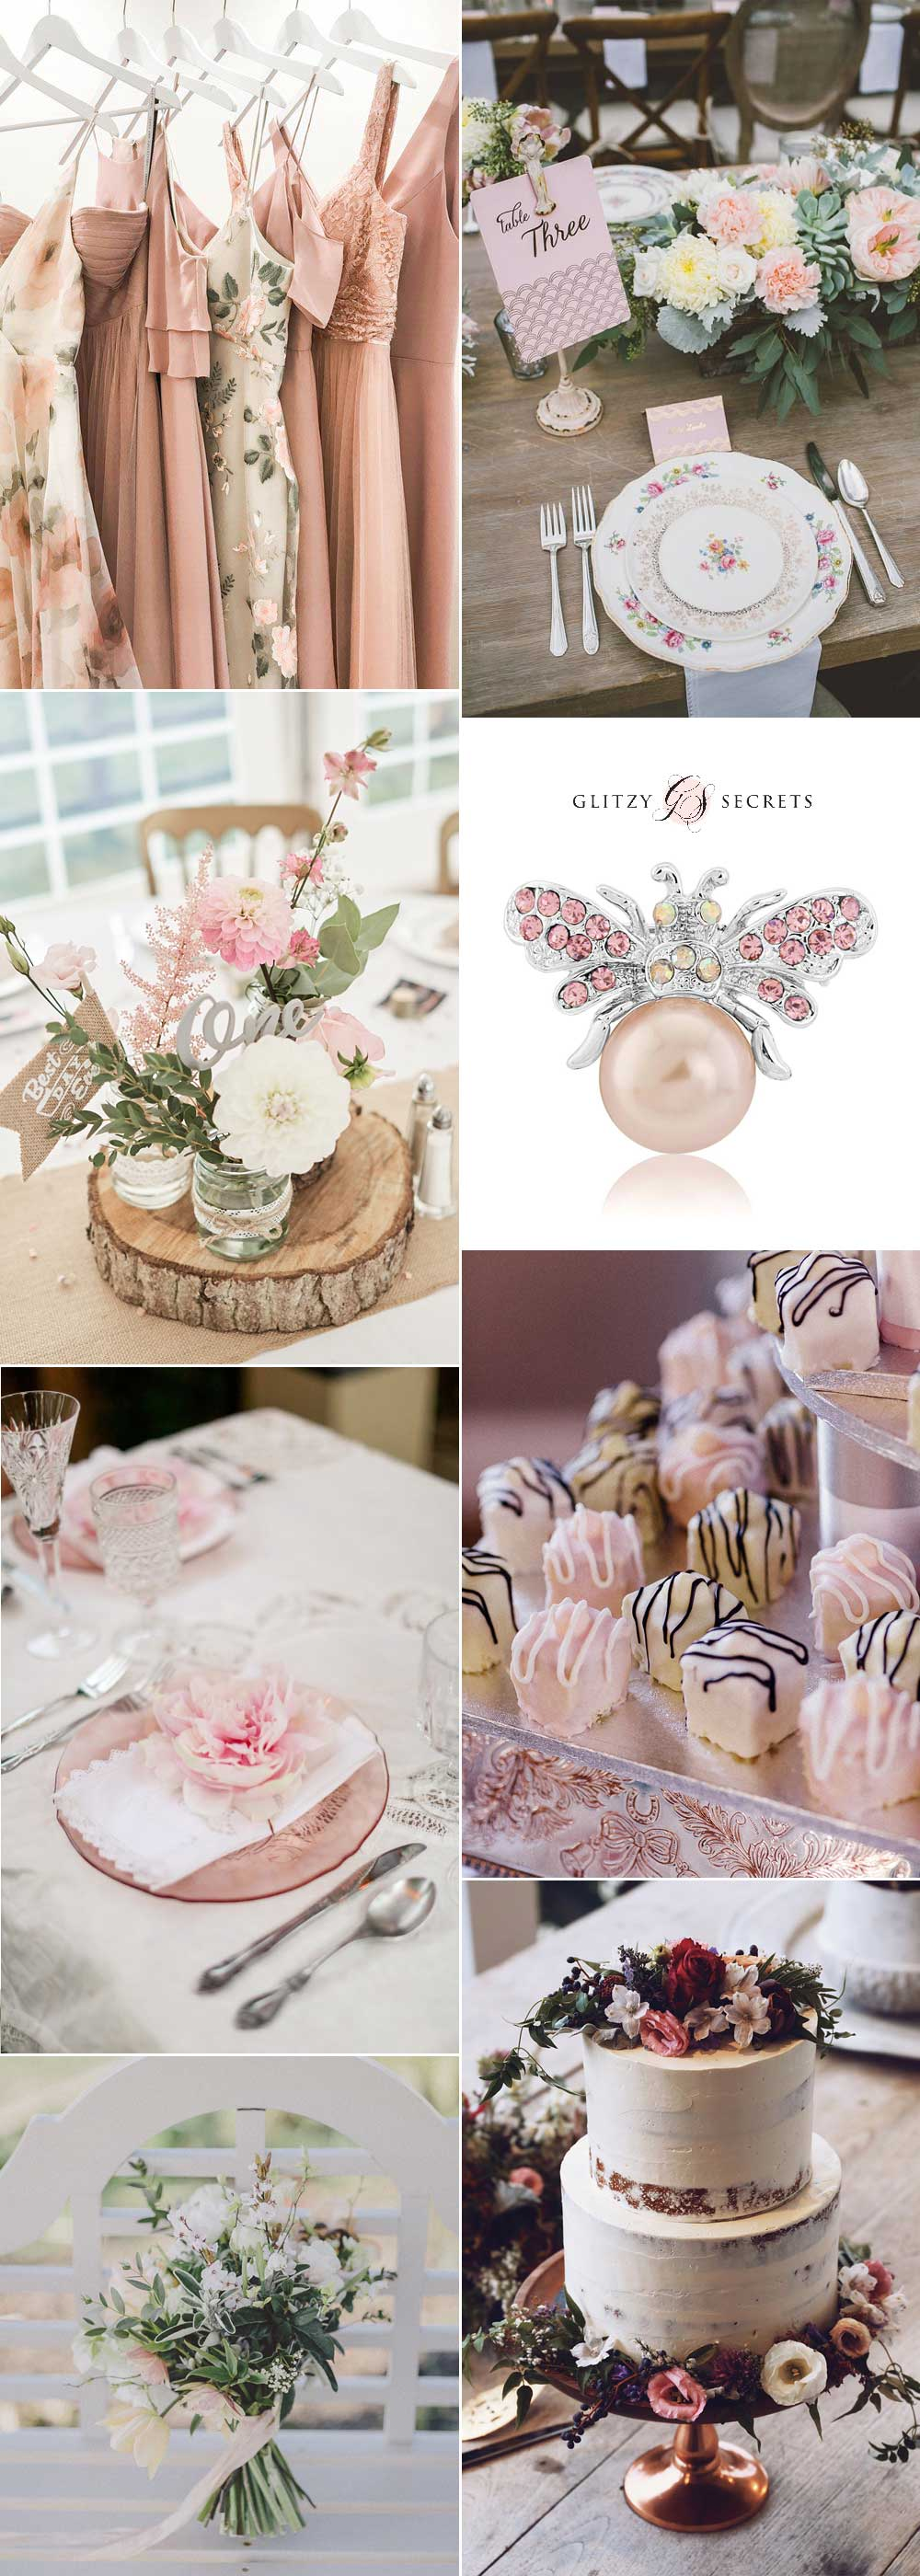 Pink and white vintage china wedding decor ideas